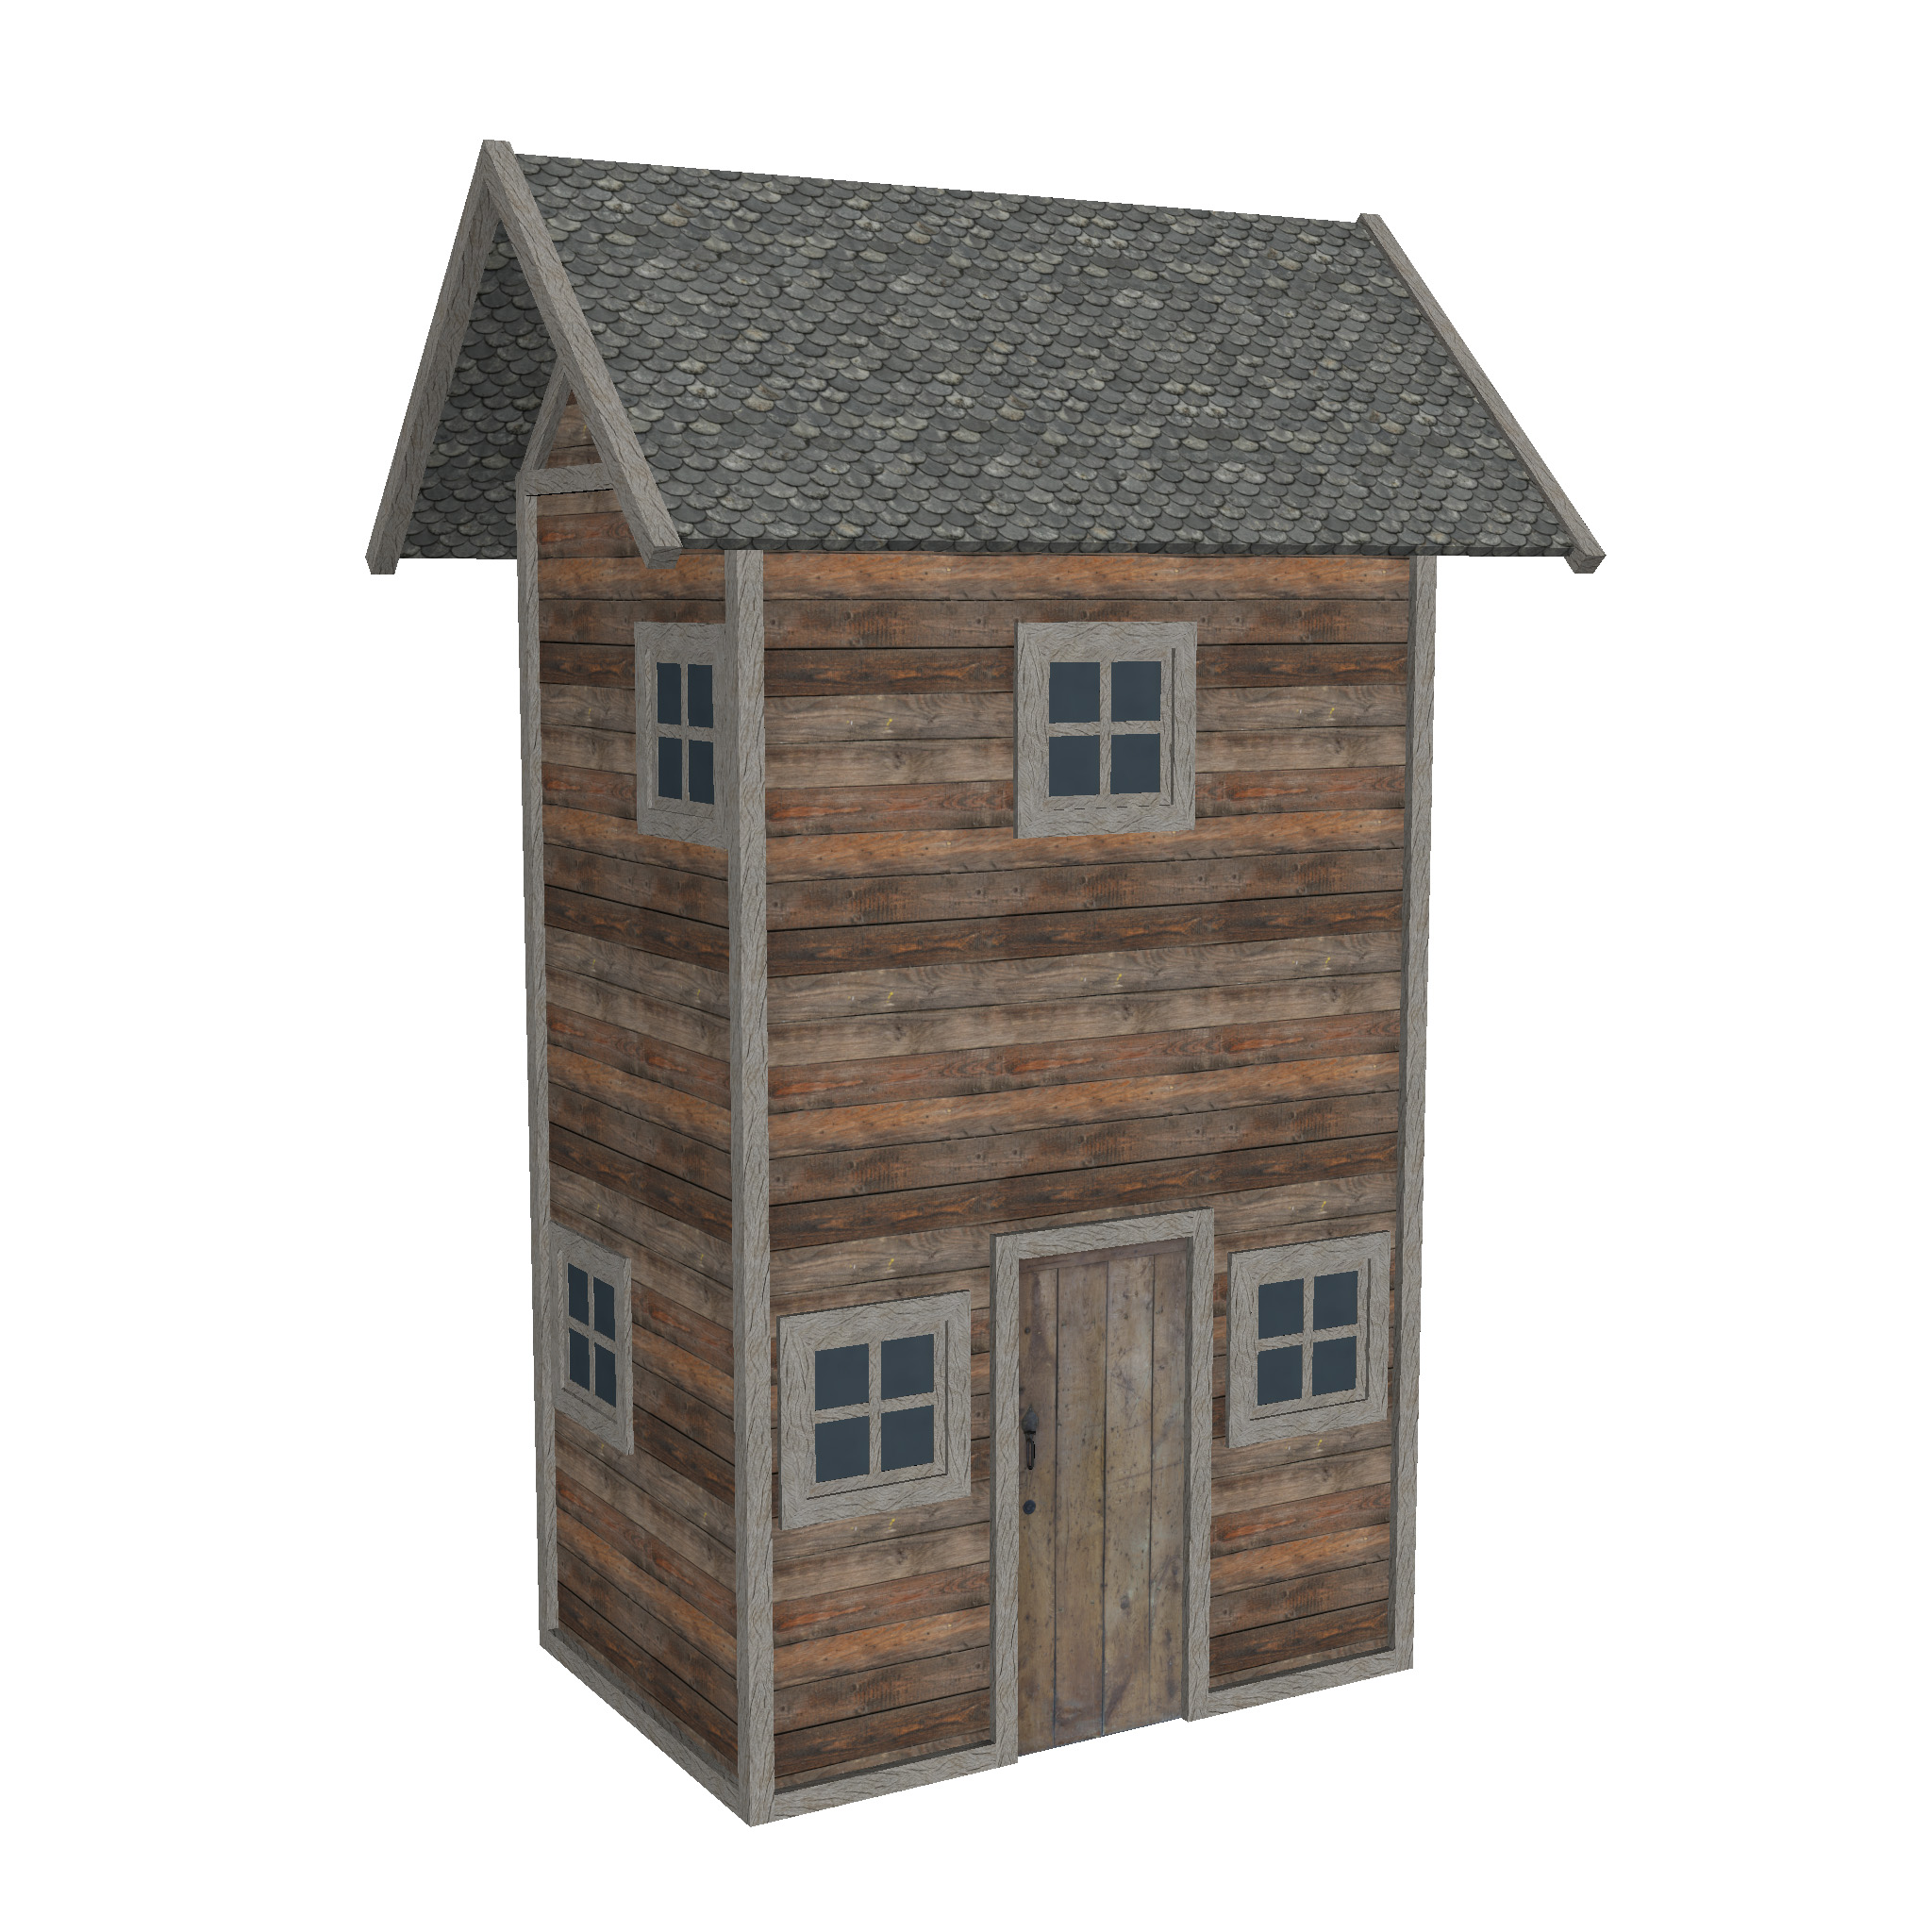 modular wood house set 3d model fbx ma mb 271441